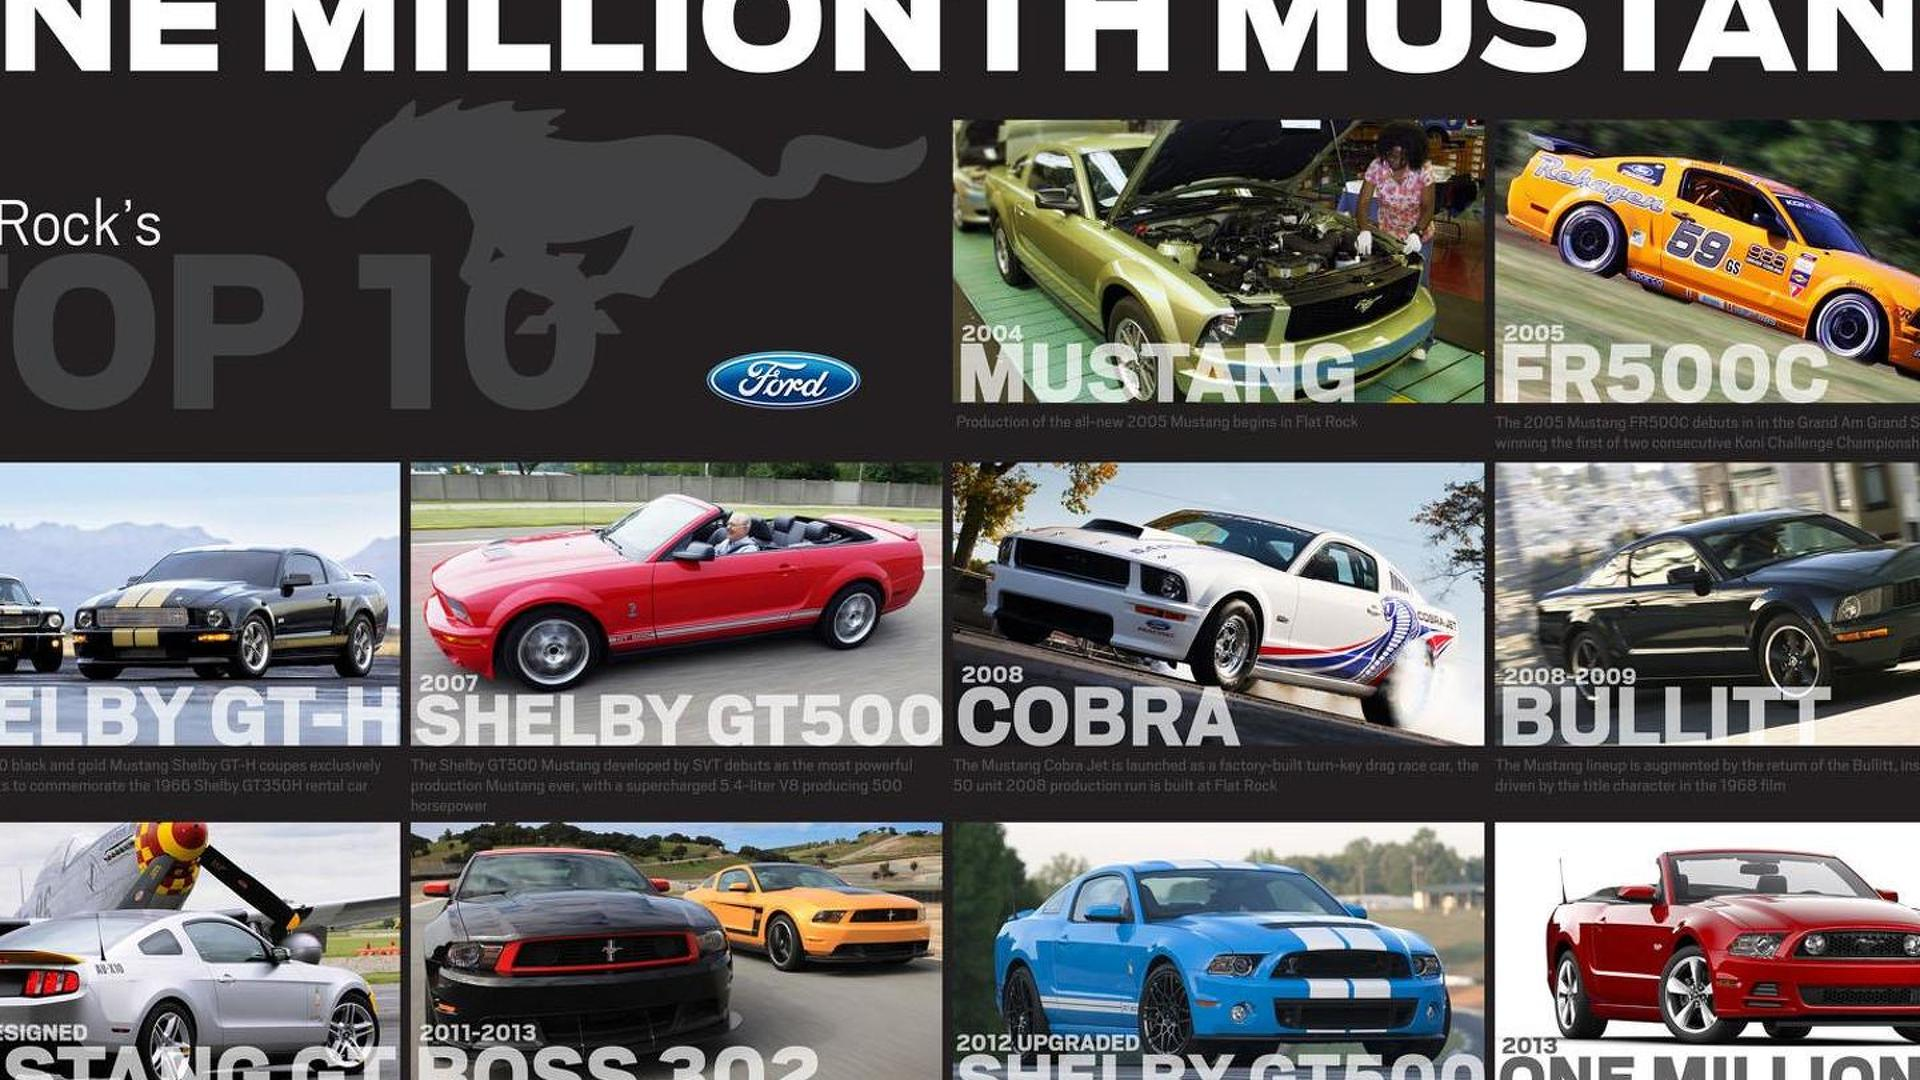 Ford Mustang turns 49, celebrates a production milestone